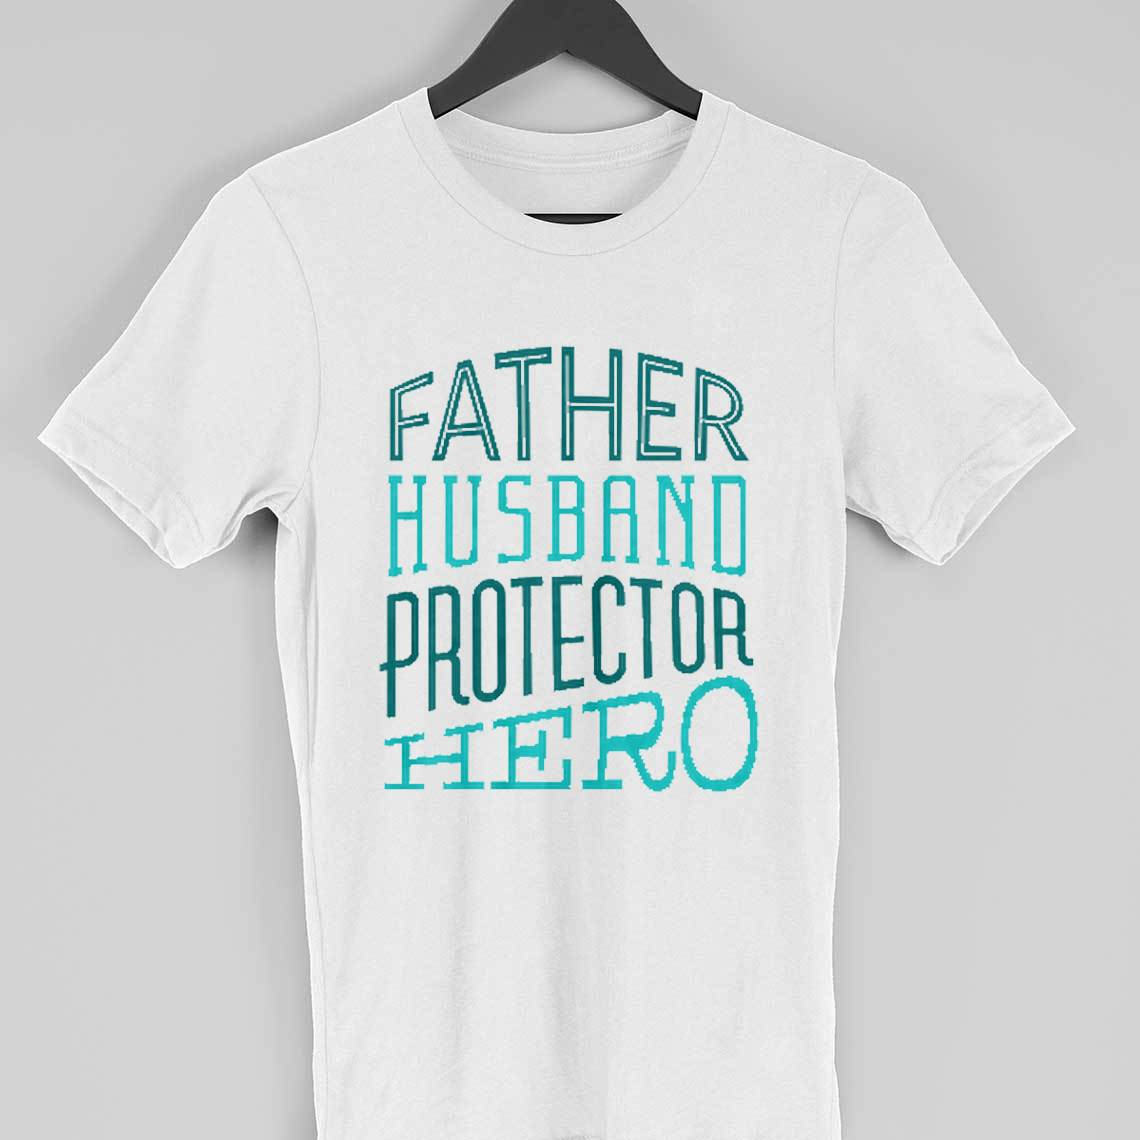 buy Father's Day T-shirt Online